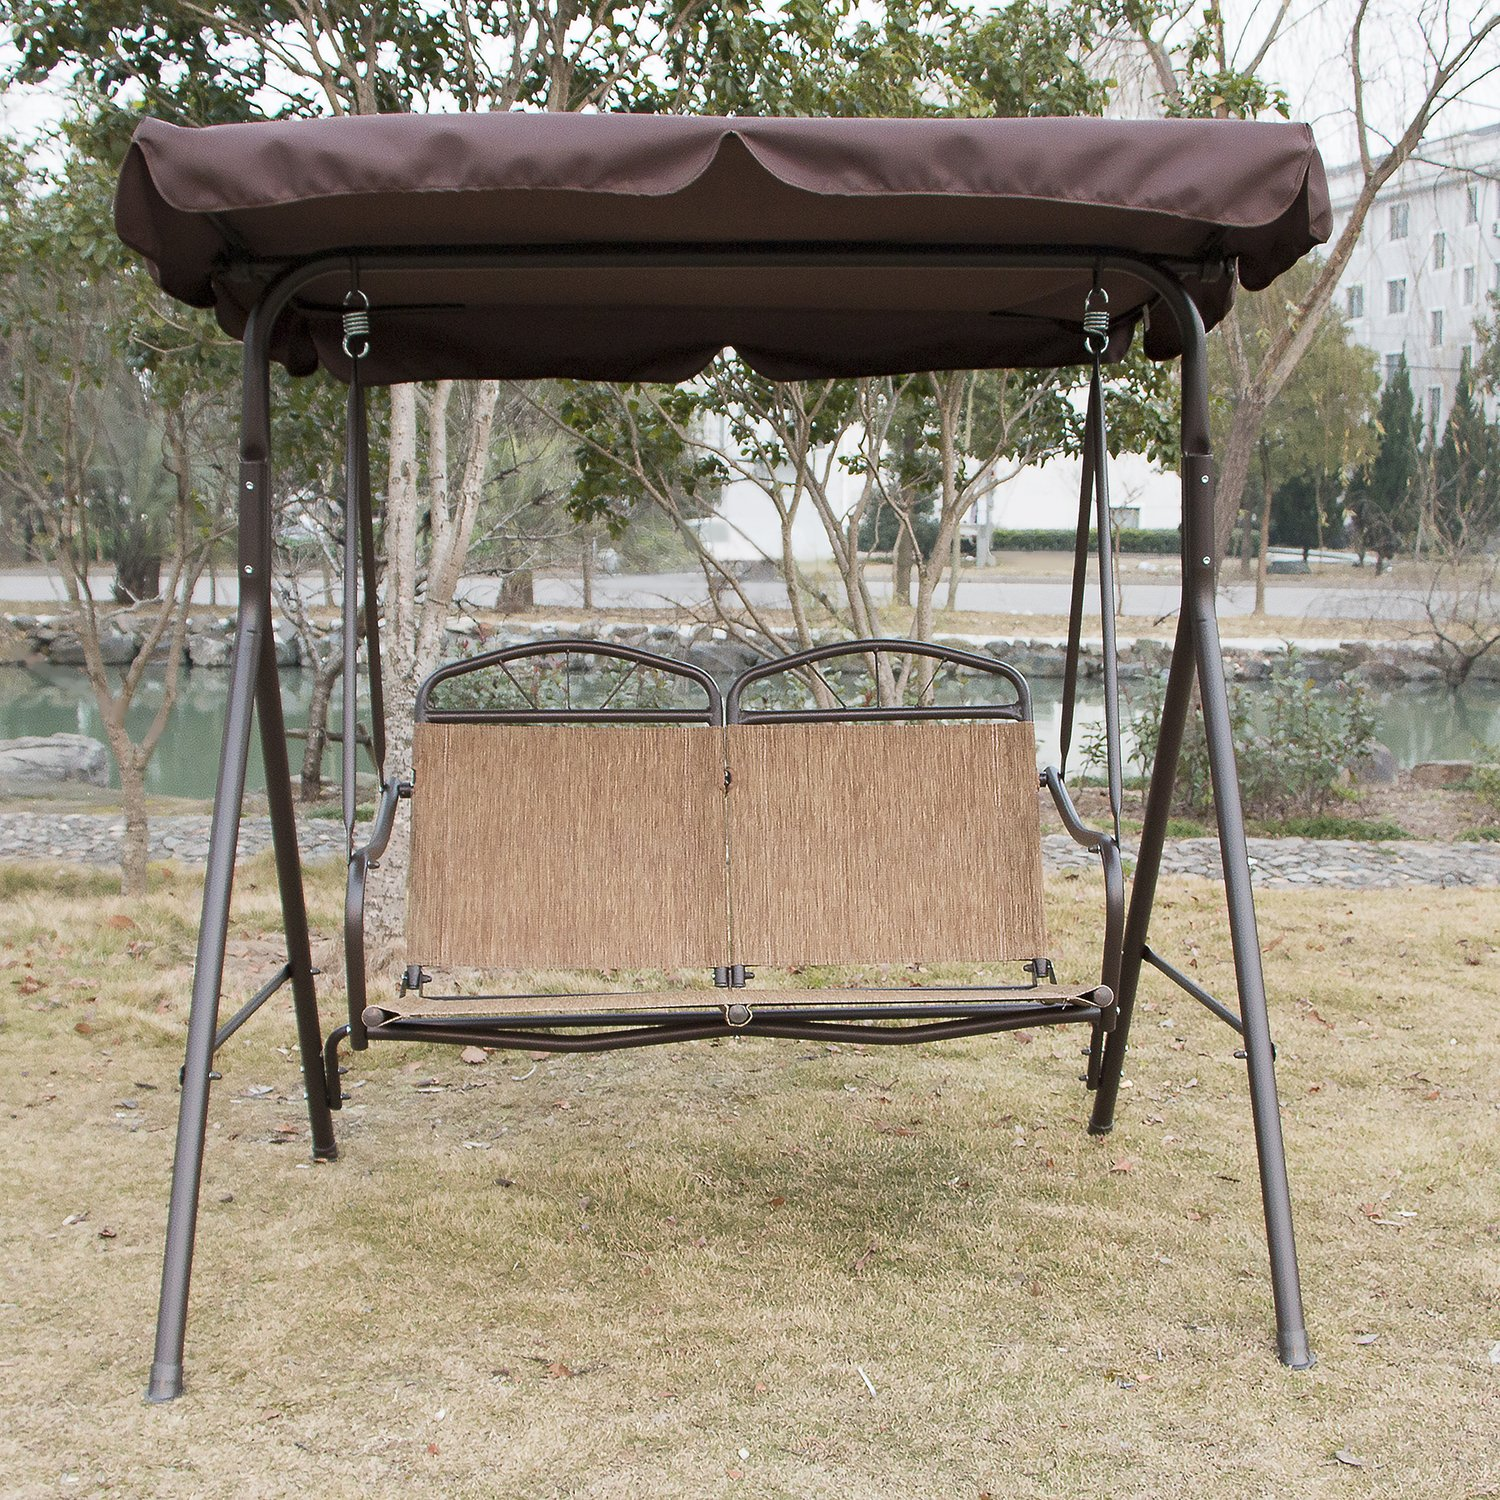 Sliverylake Outdoor 2 Person Patio Swing Hammock Chair with Canopy Awning Backyard Textilene Seat Patio Furniture